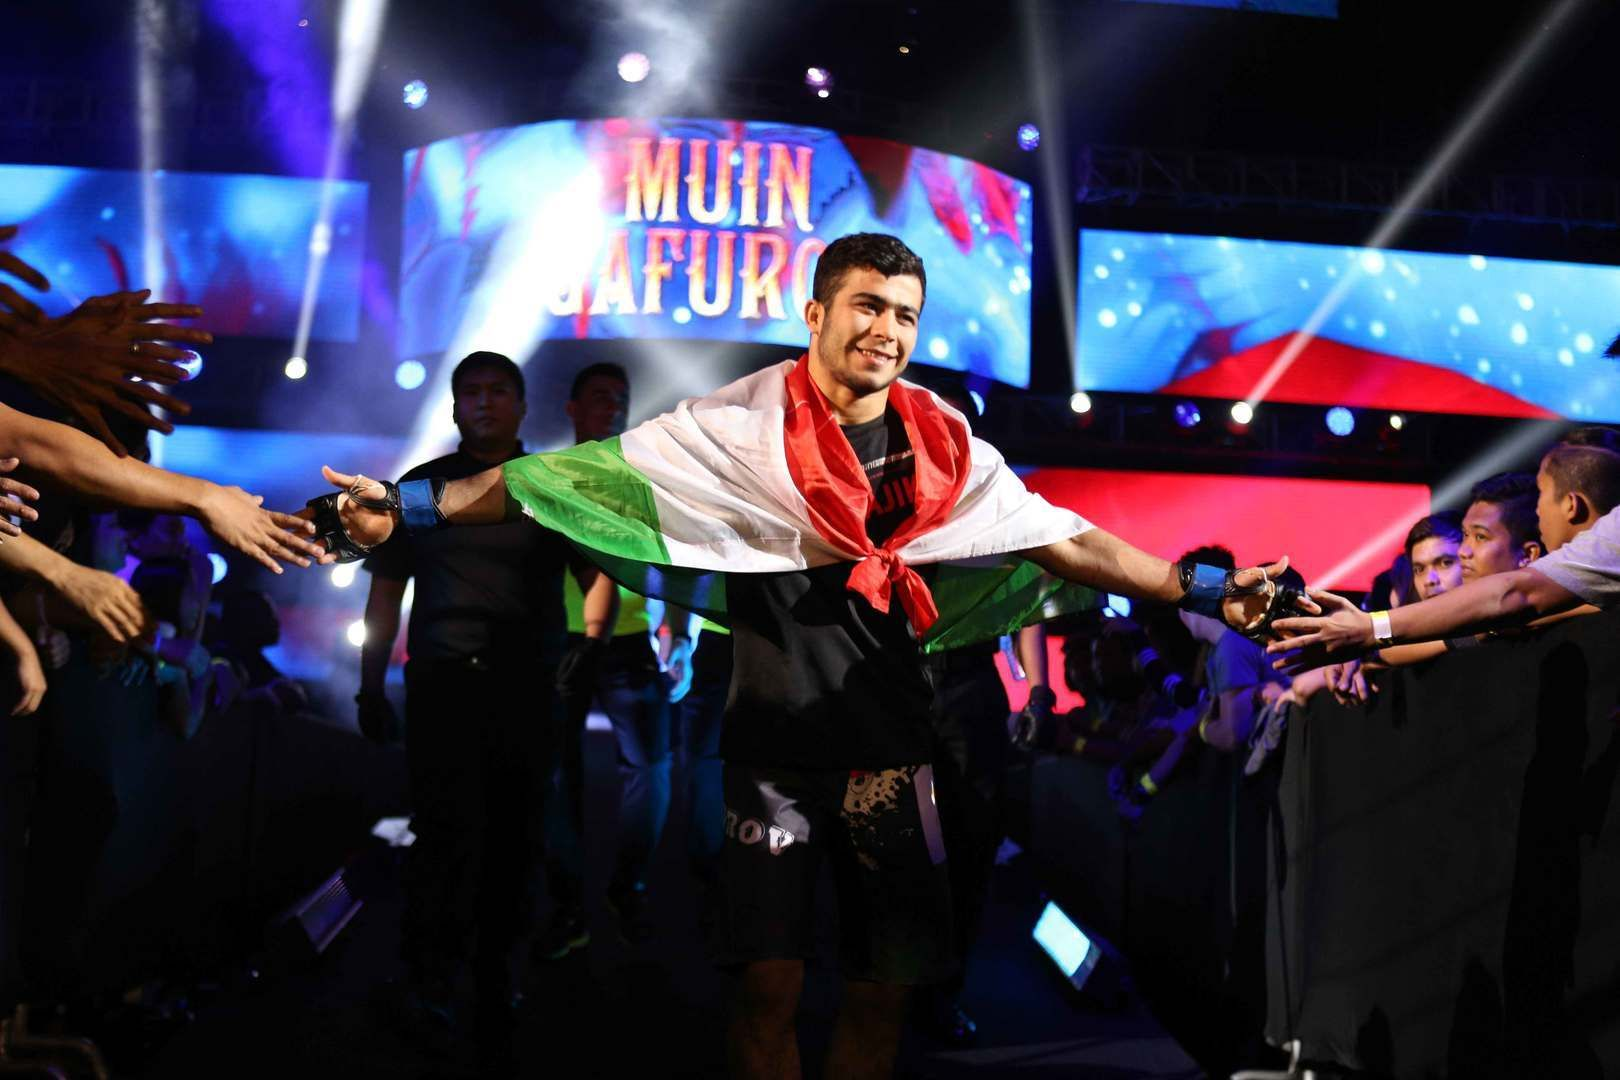 Muin Gafurov makes his entrance